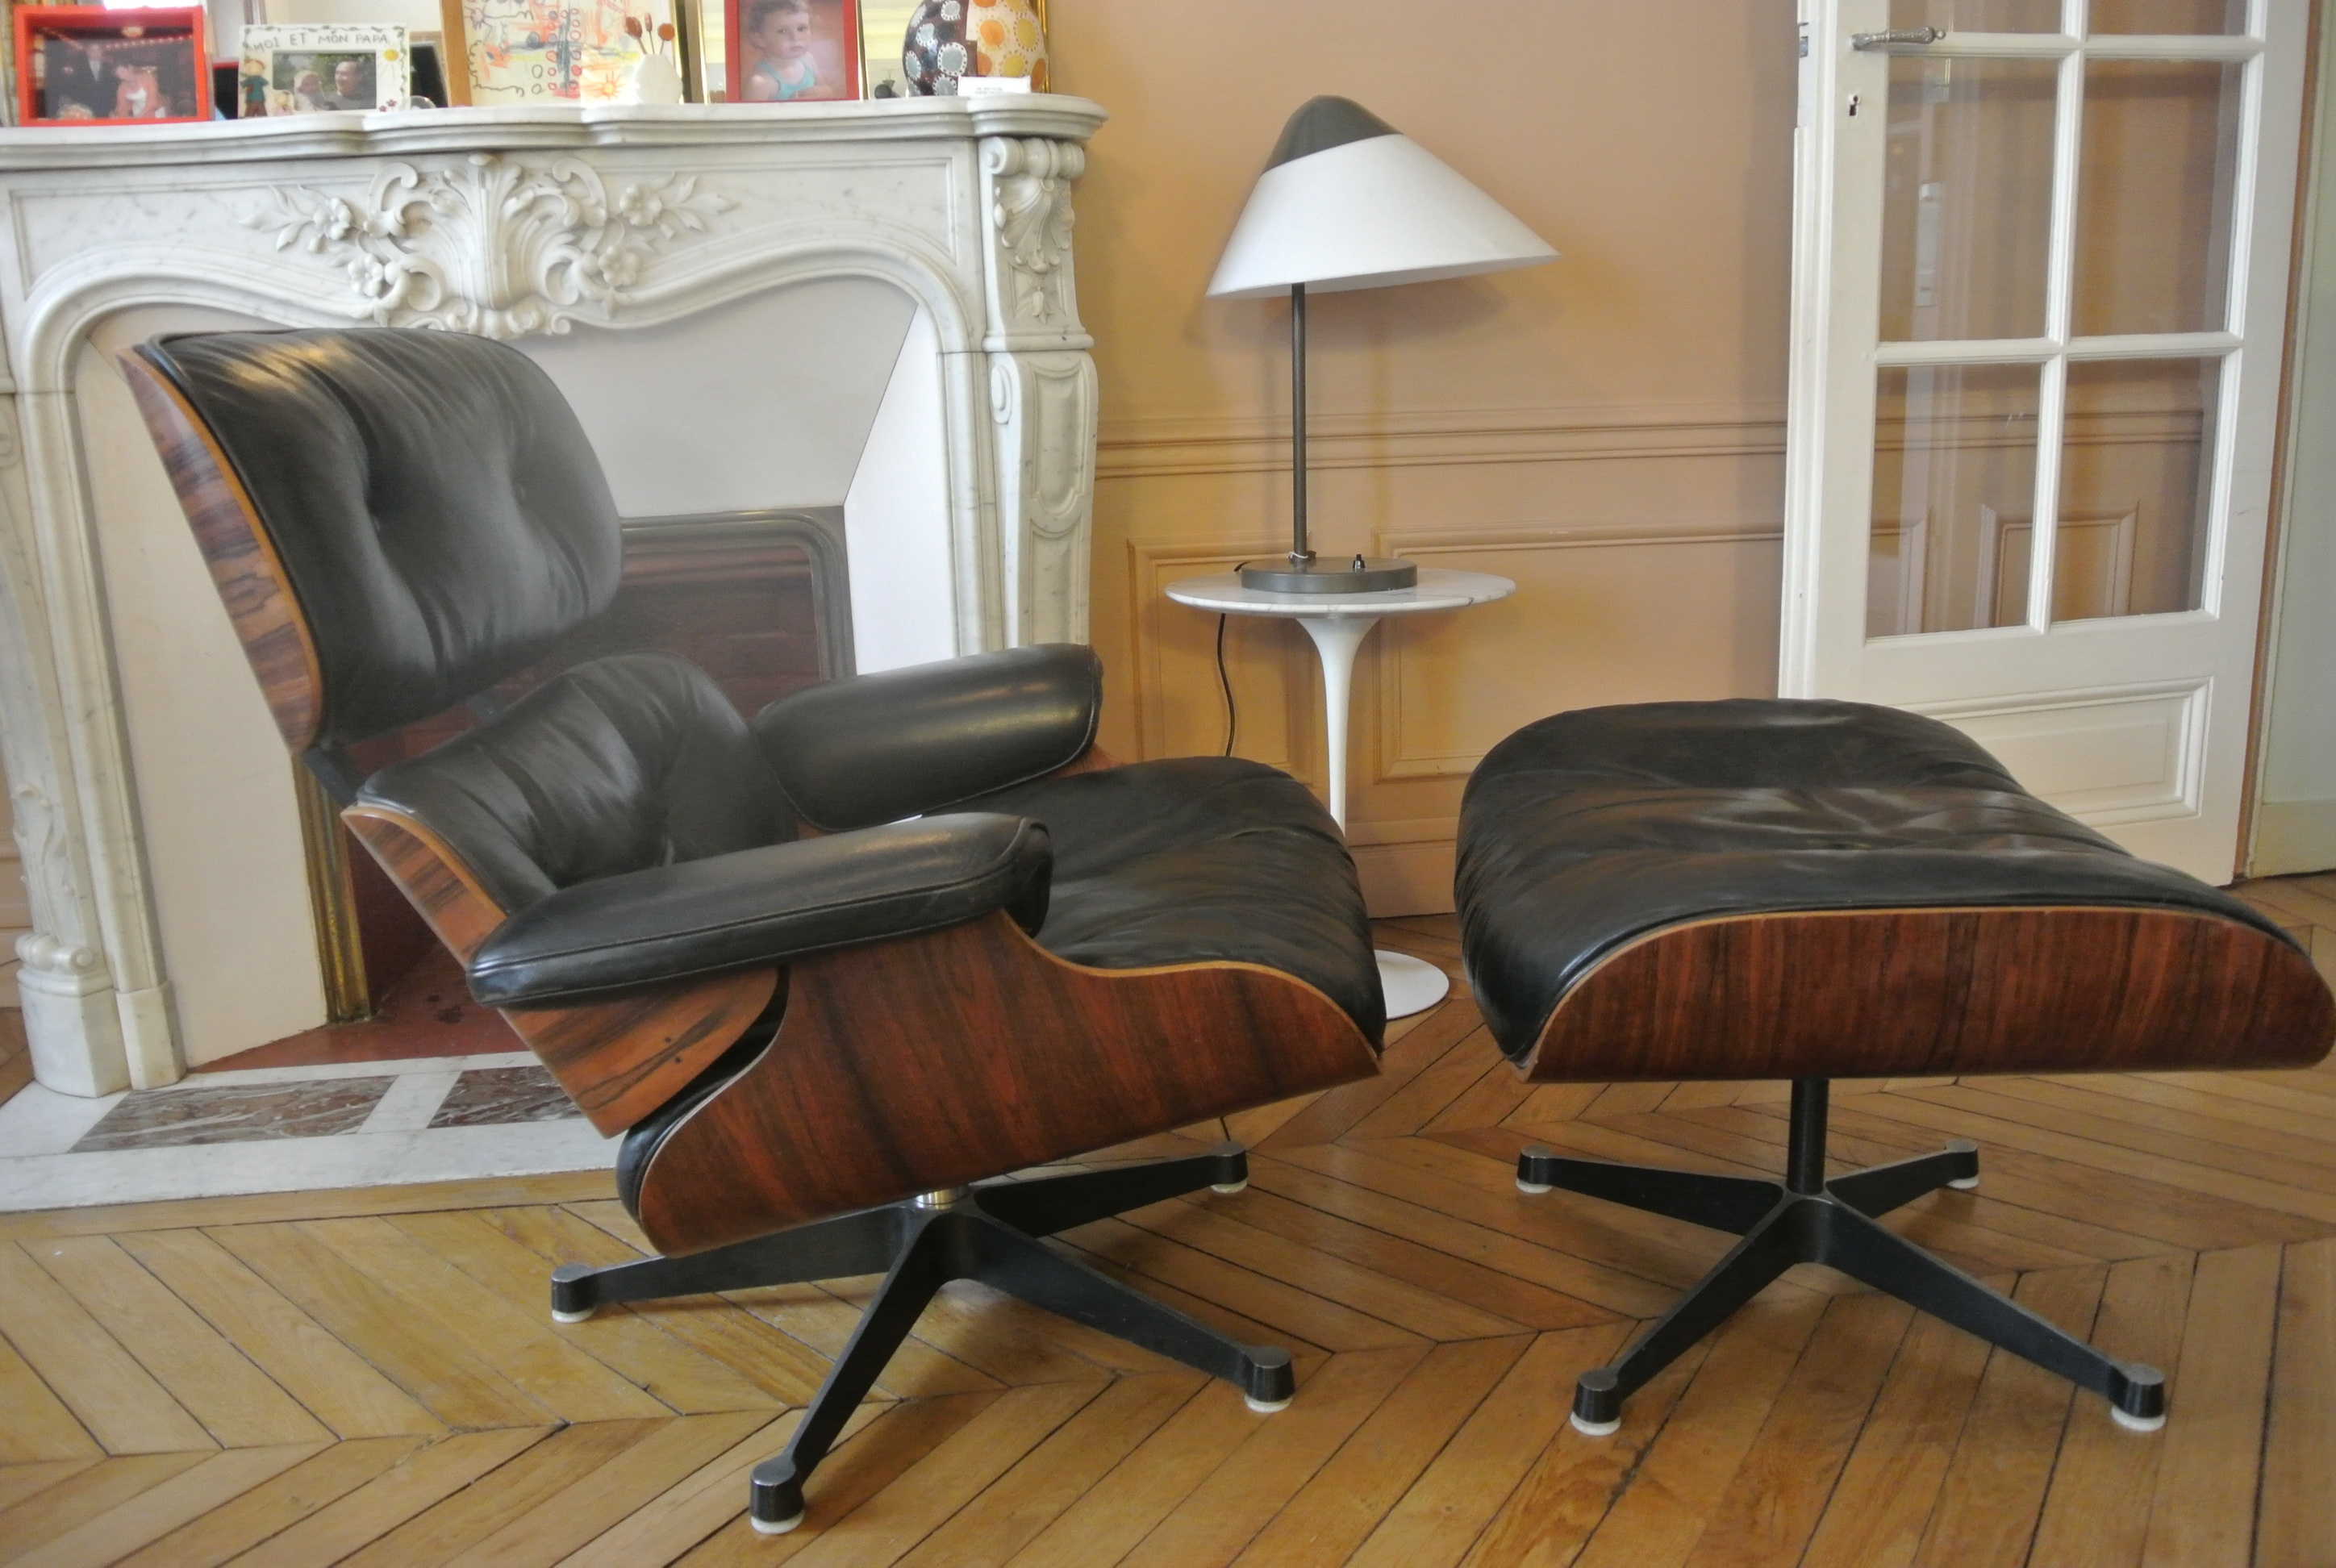 fauteuil eames ottoman. Black Bedroom Furniture Sets. Home Design Ideas